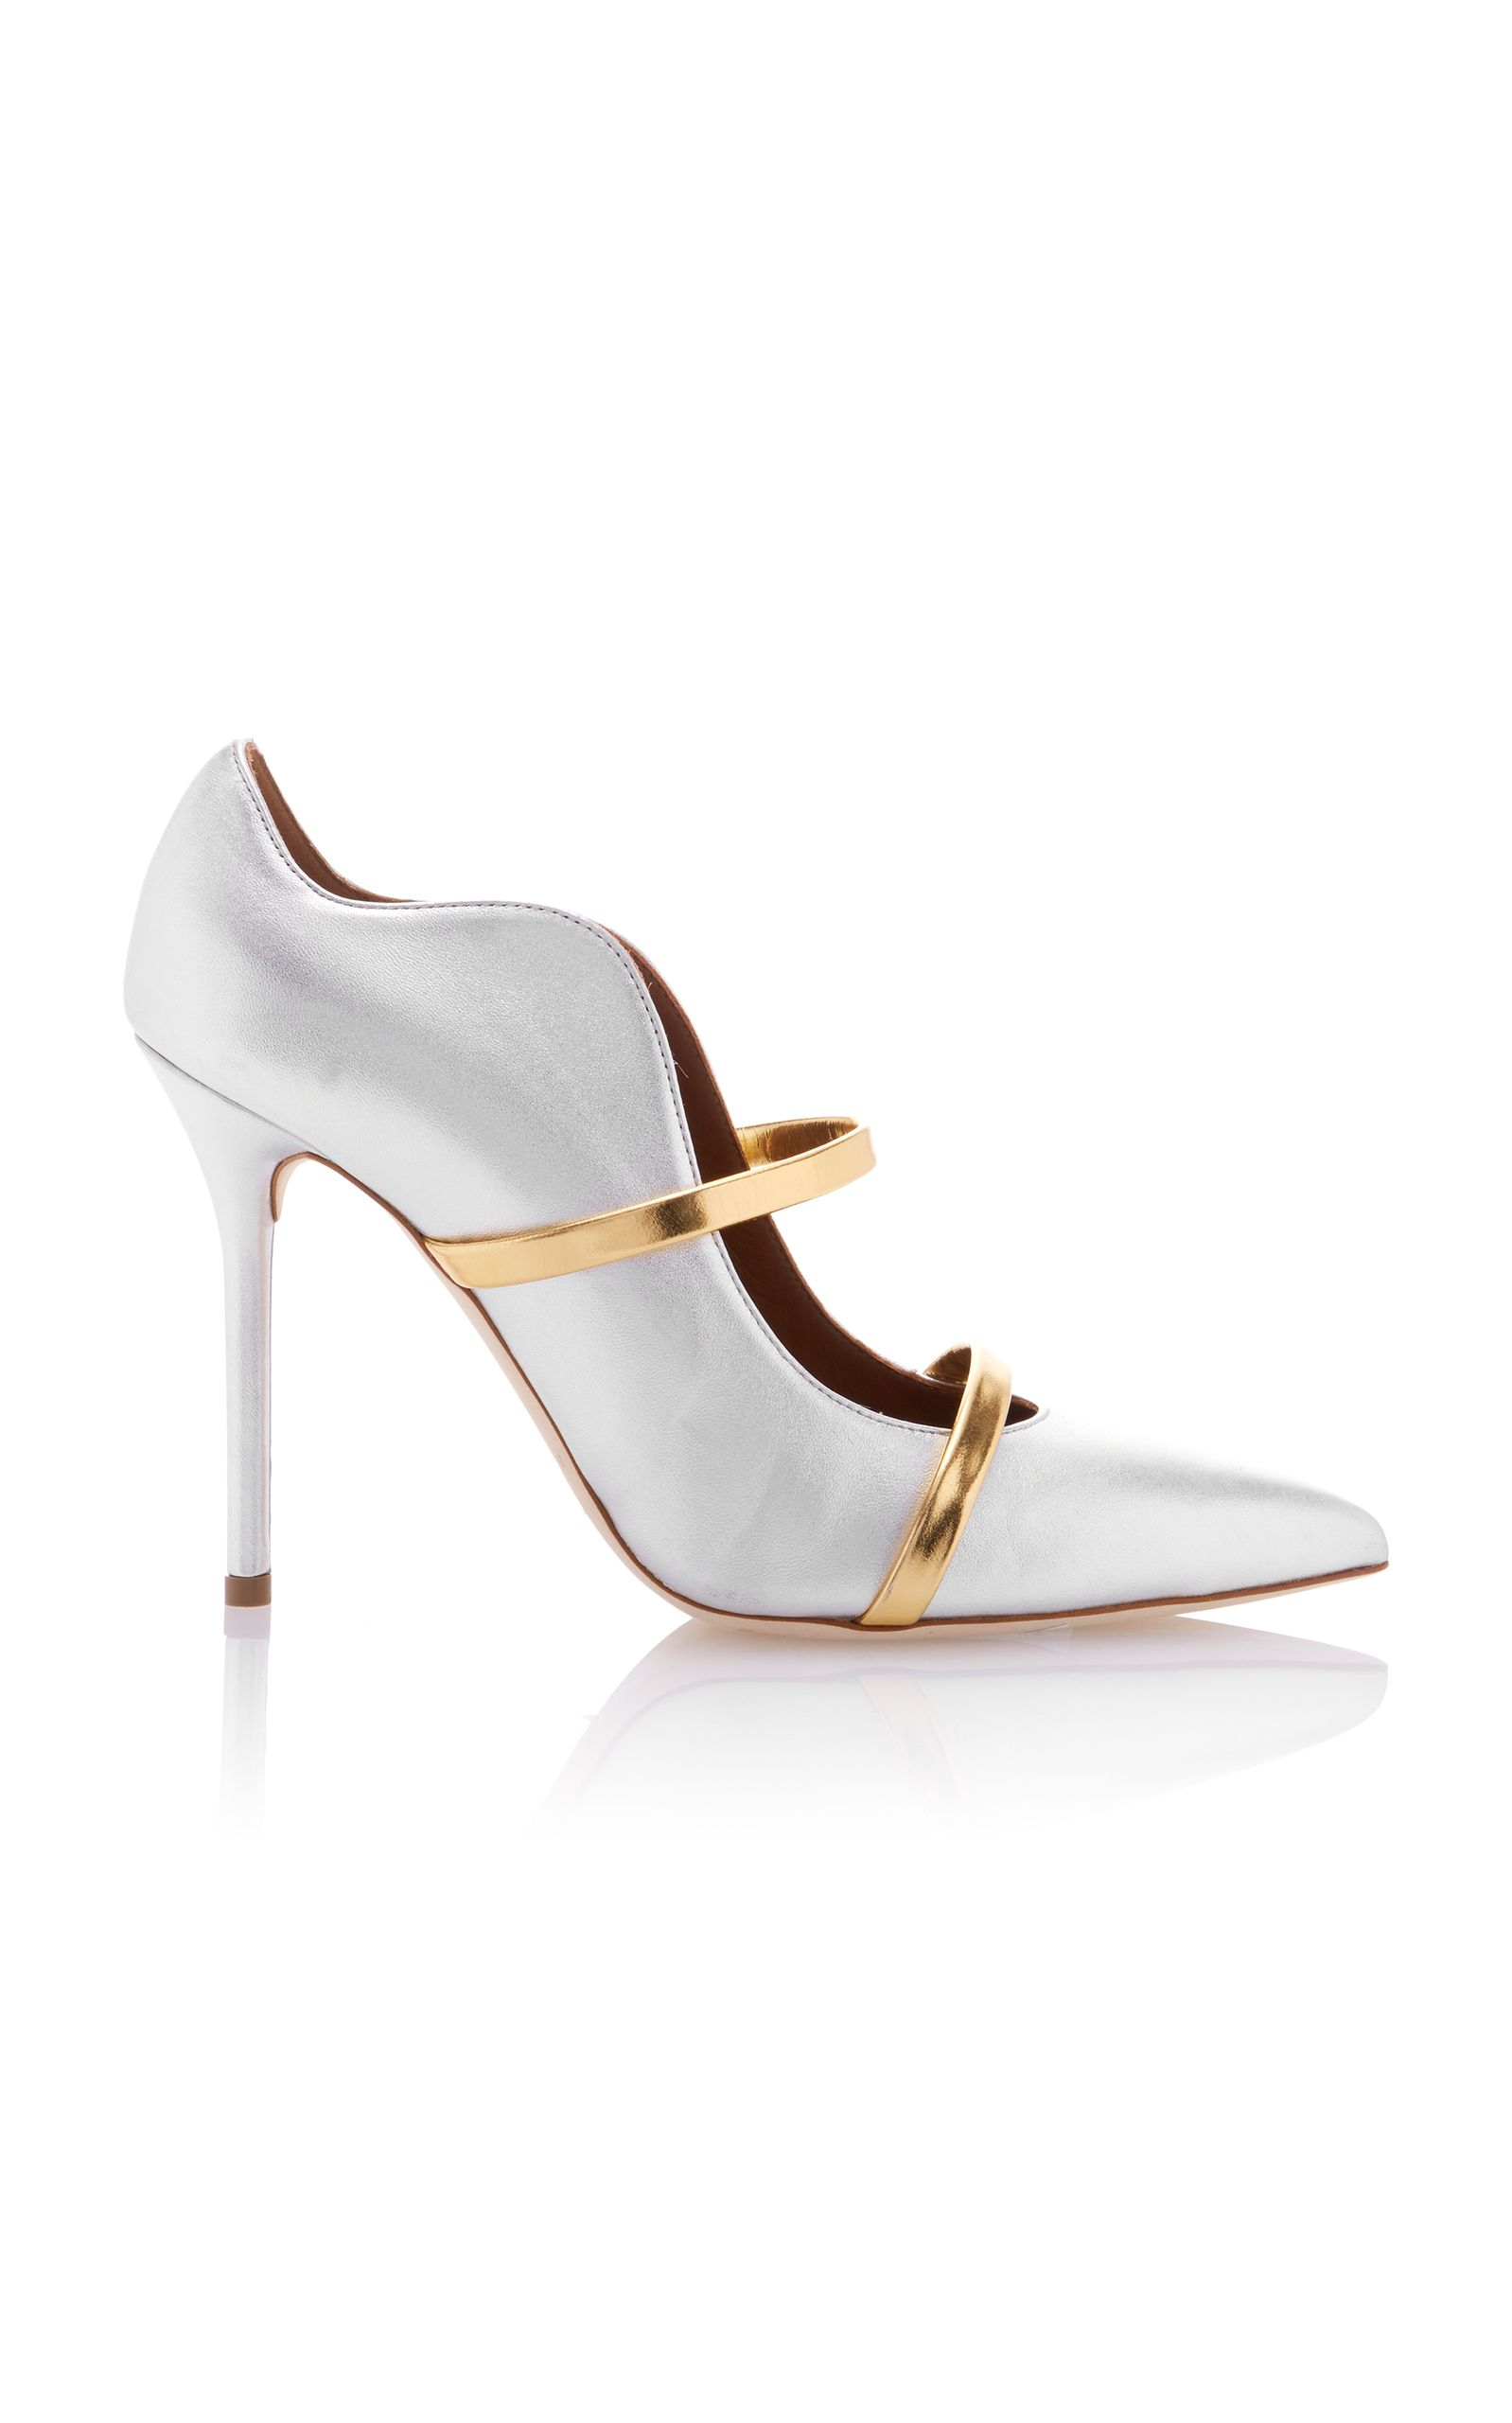 Maureen Metallic Leather Mules Malone Souliers tLNqgYm